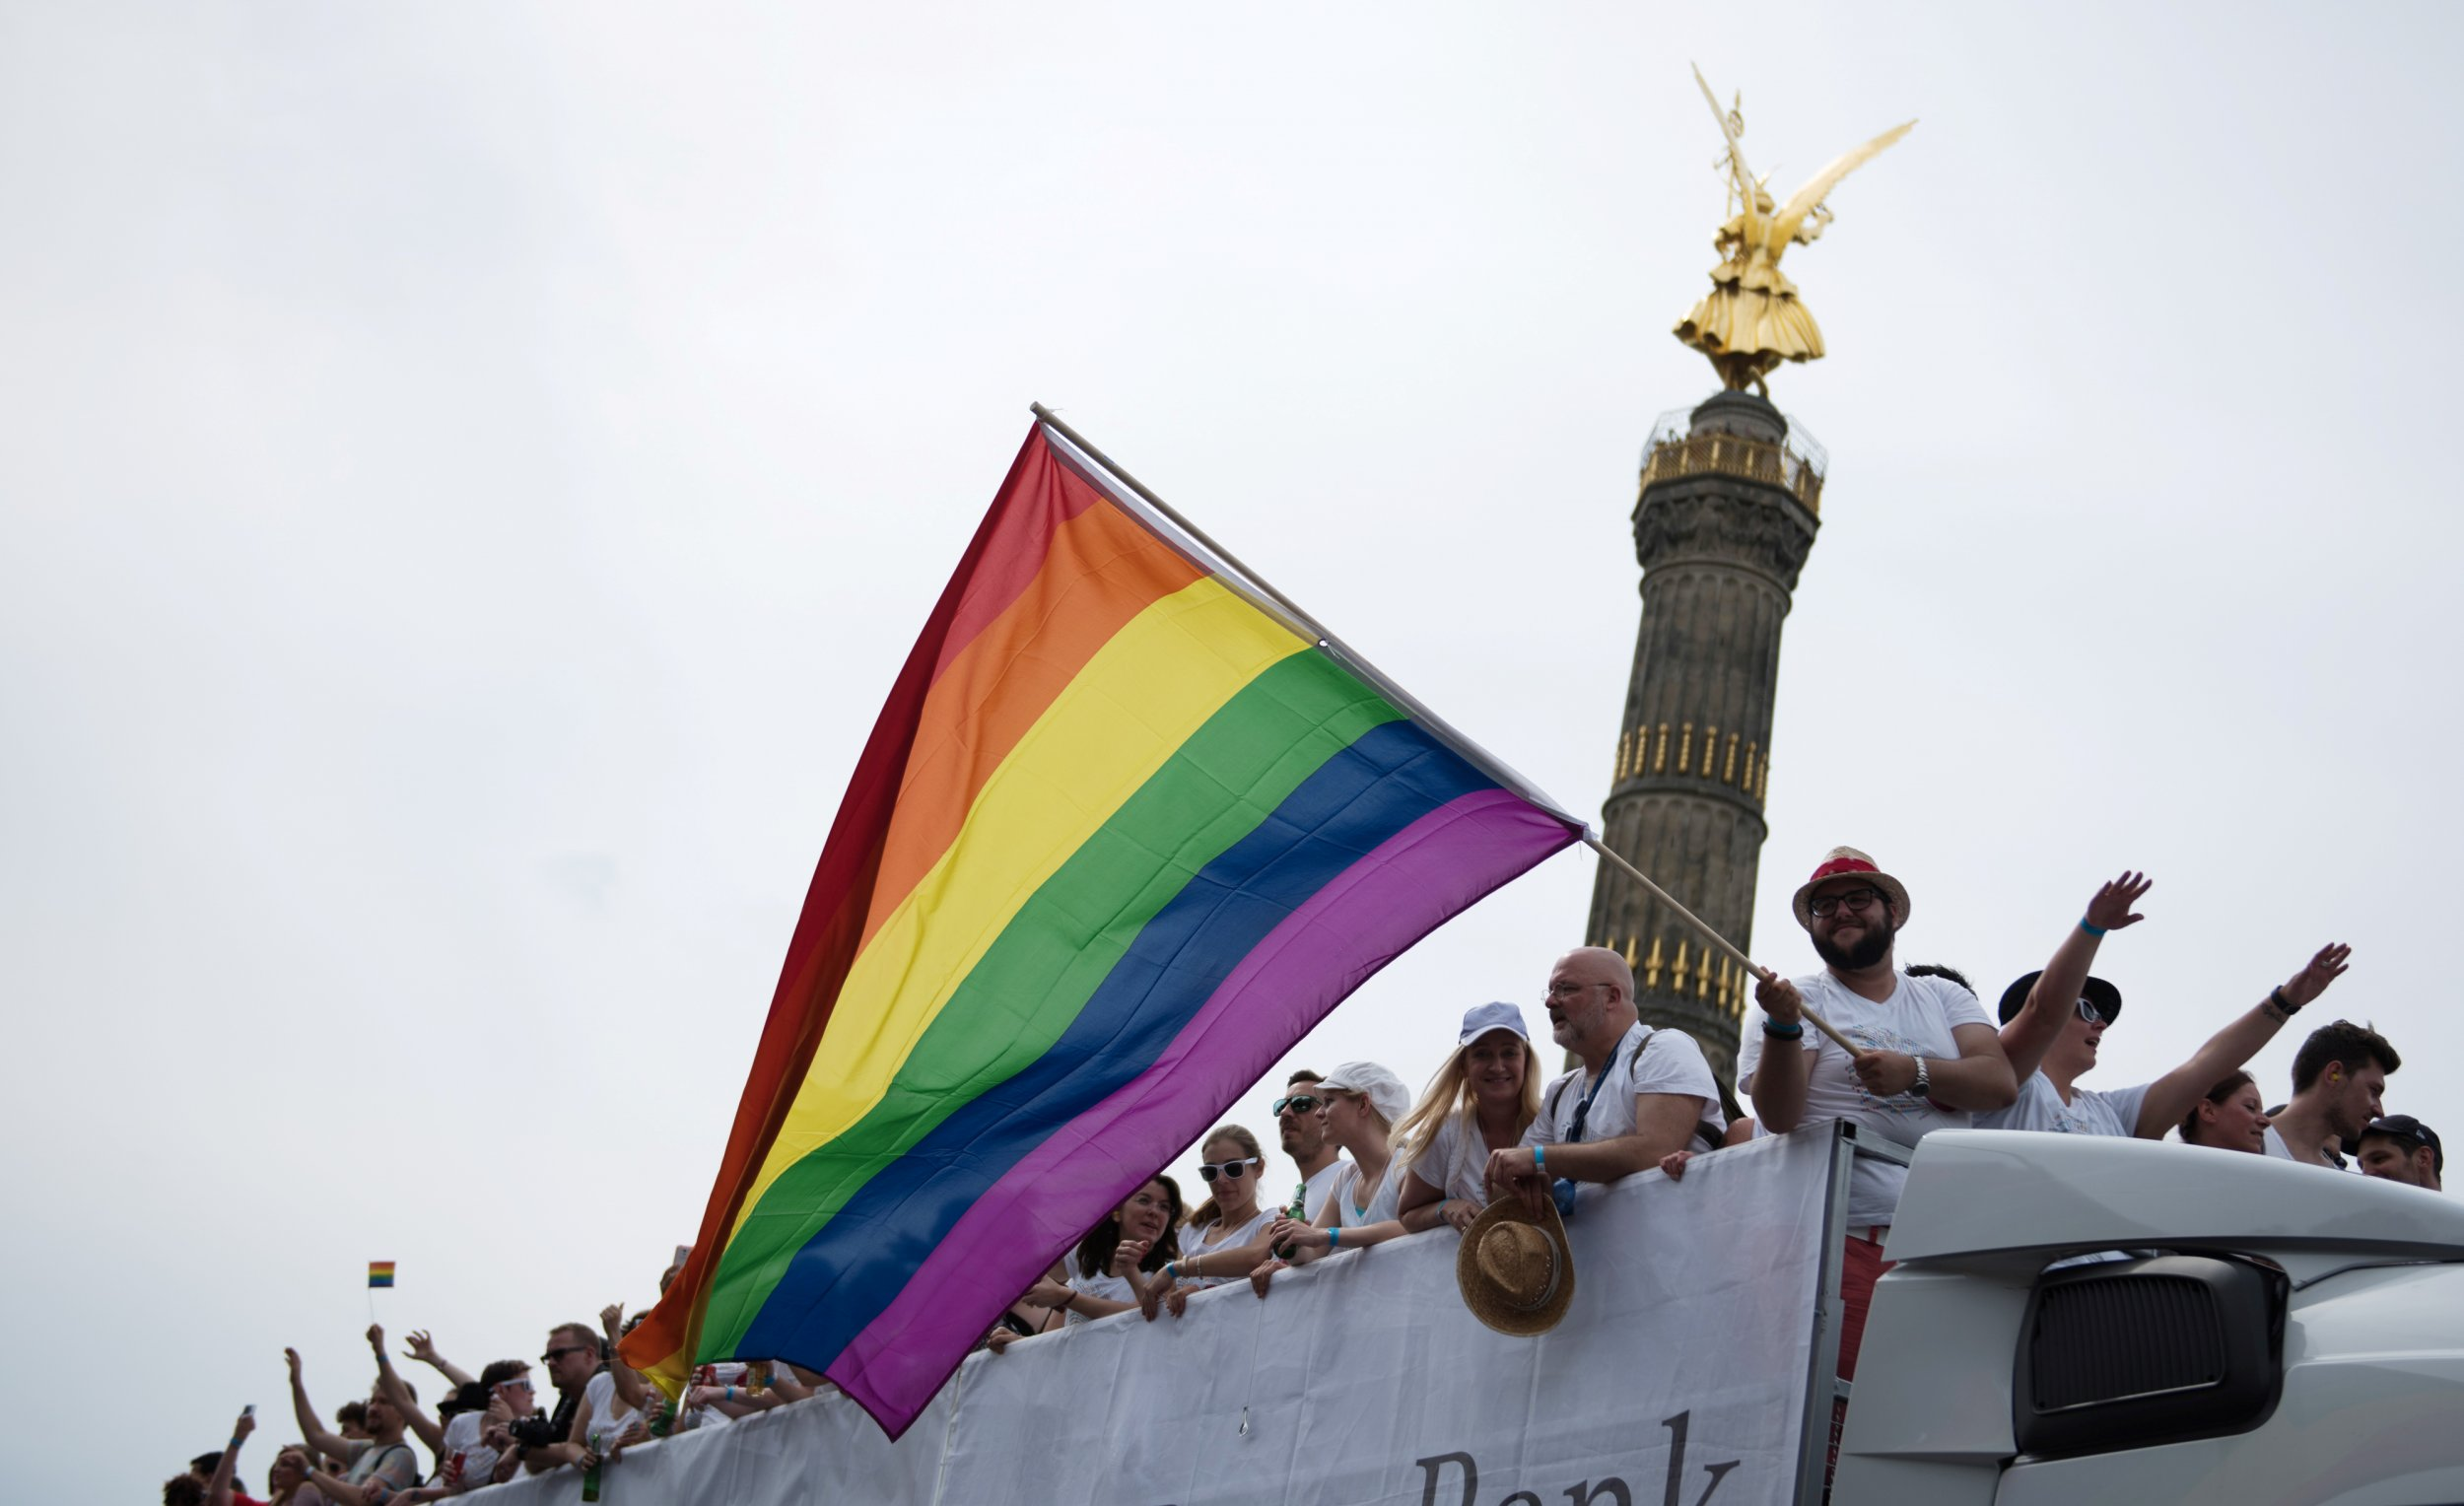 Berlin Pride Parade